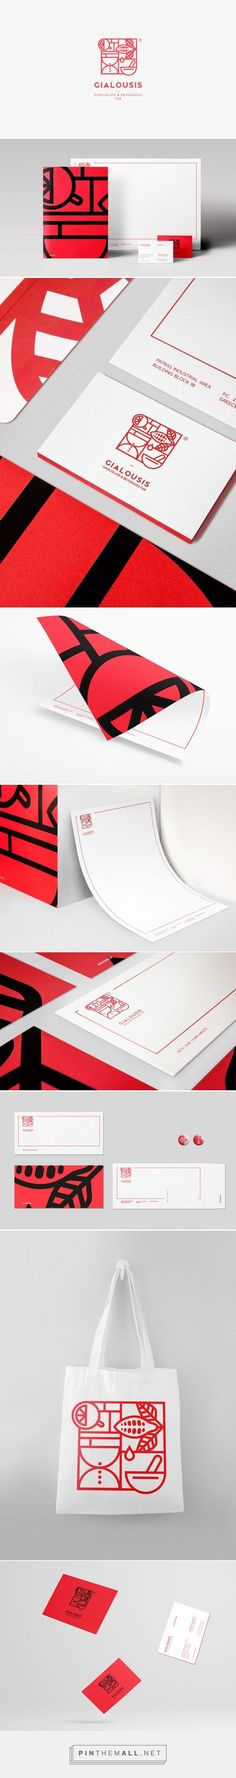 (53) Gialousis Branding | | Luminous Design Group... - a grouped images picture - Pin Them All | i D ´ S | Pinterest / Branding / Inspiration / ideas / Brand / Design / Food / Products / Chocolate / Coffee / Fun / Smart / Line Art / Accent Color / Red / Modern